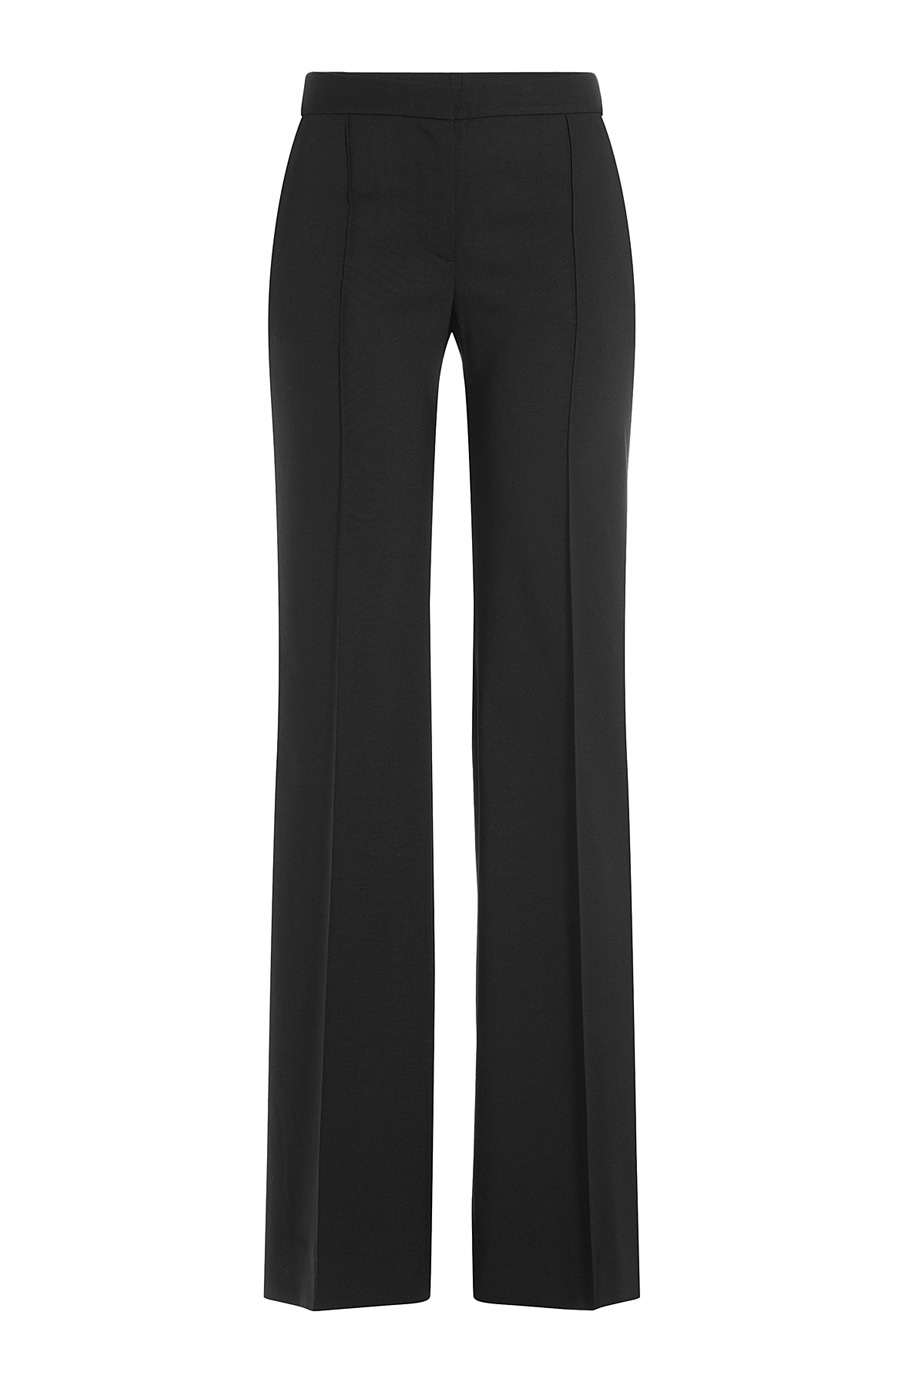 Wide Leg Wool Pants - length: standard; pattern: plain; hip detail: draws attention to hips; waist: mid/regular rise; predominant colour: black; occasions: casual, work, creative work; waist detail: feature waist detail; fit: wide leg; pattern type: fabric; texture group: woven light midweight; style: standard; season: a/w 2015; wardrobe: basic